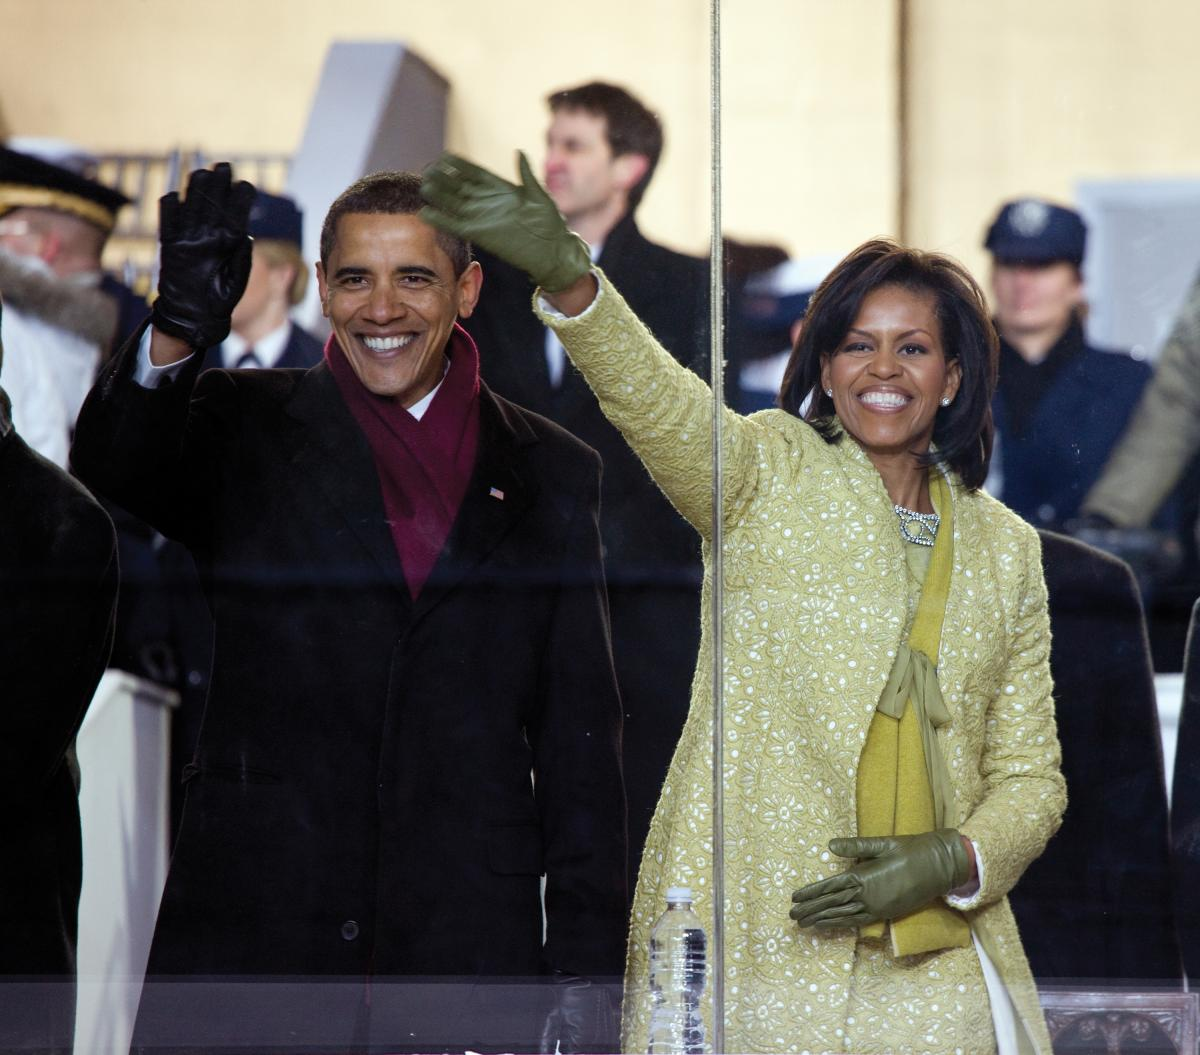 colored photo of Barack Obama and Michelle Obama waving